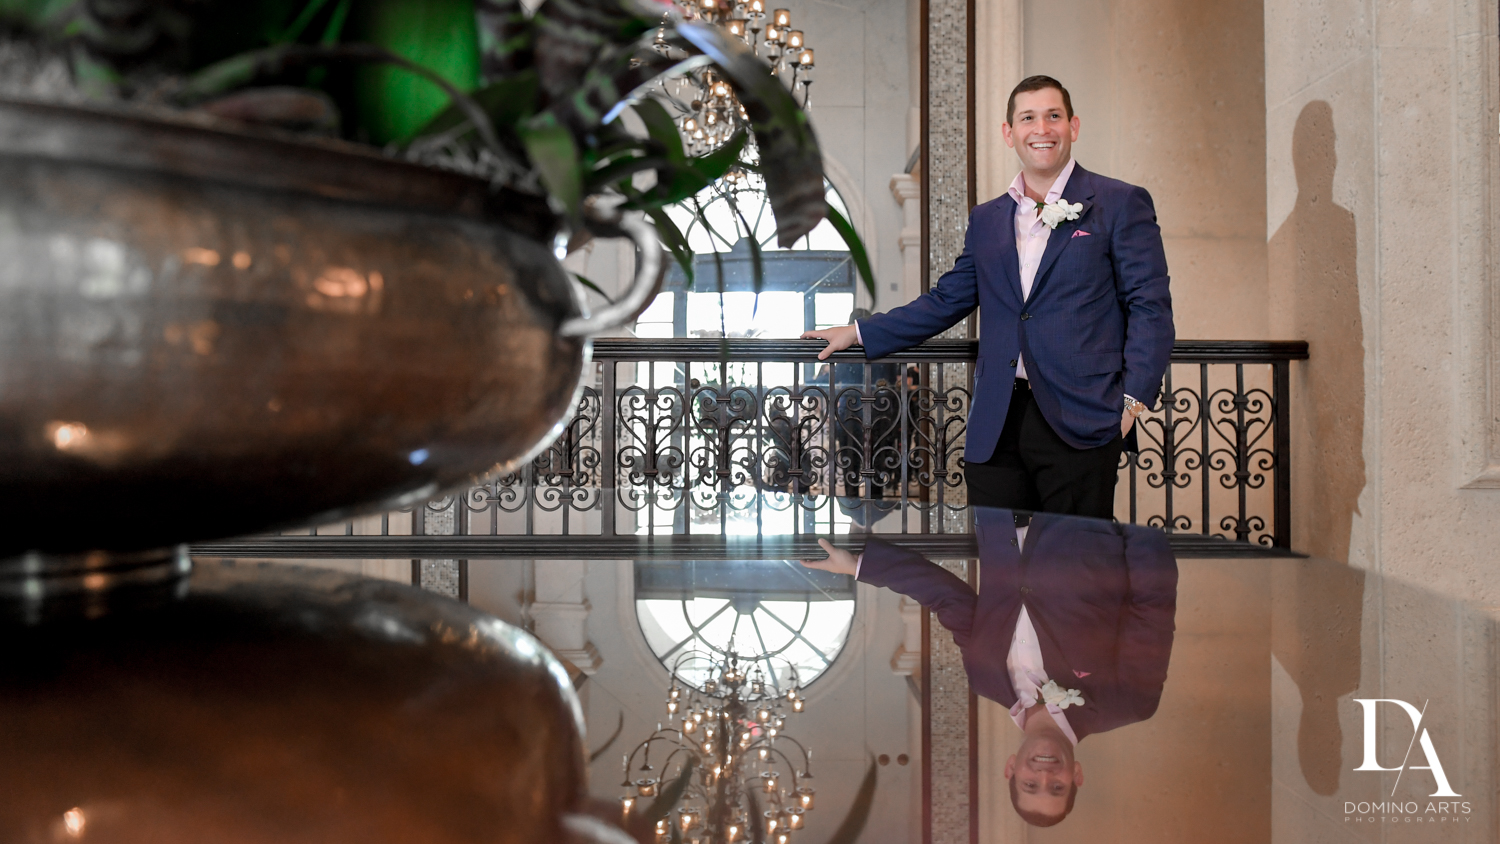 groom portrait at Beautiful Intimate Wedding at Mizner Country Club by Domino Arts Photography